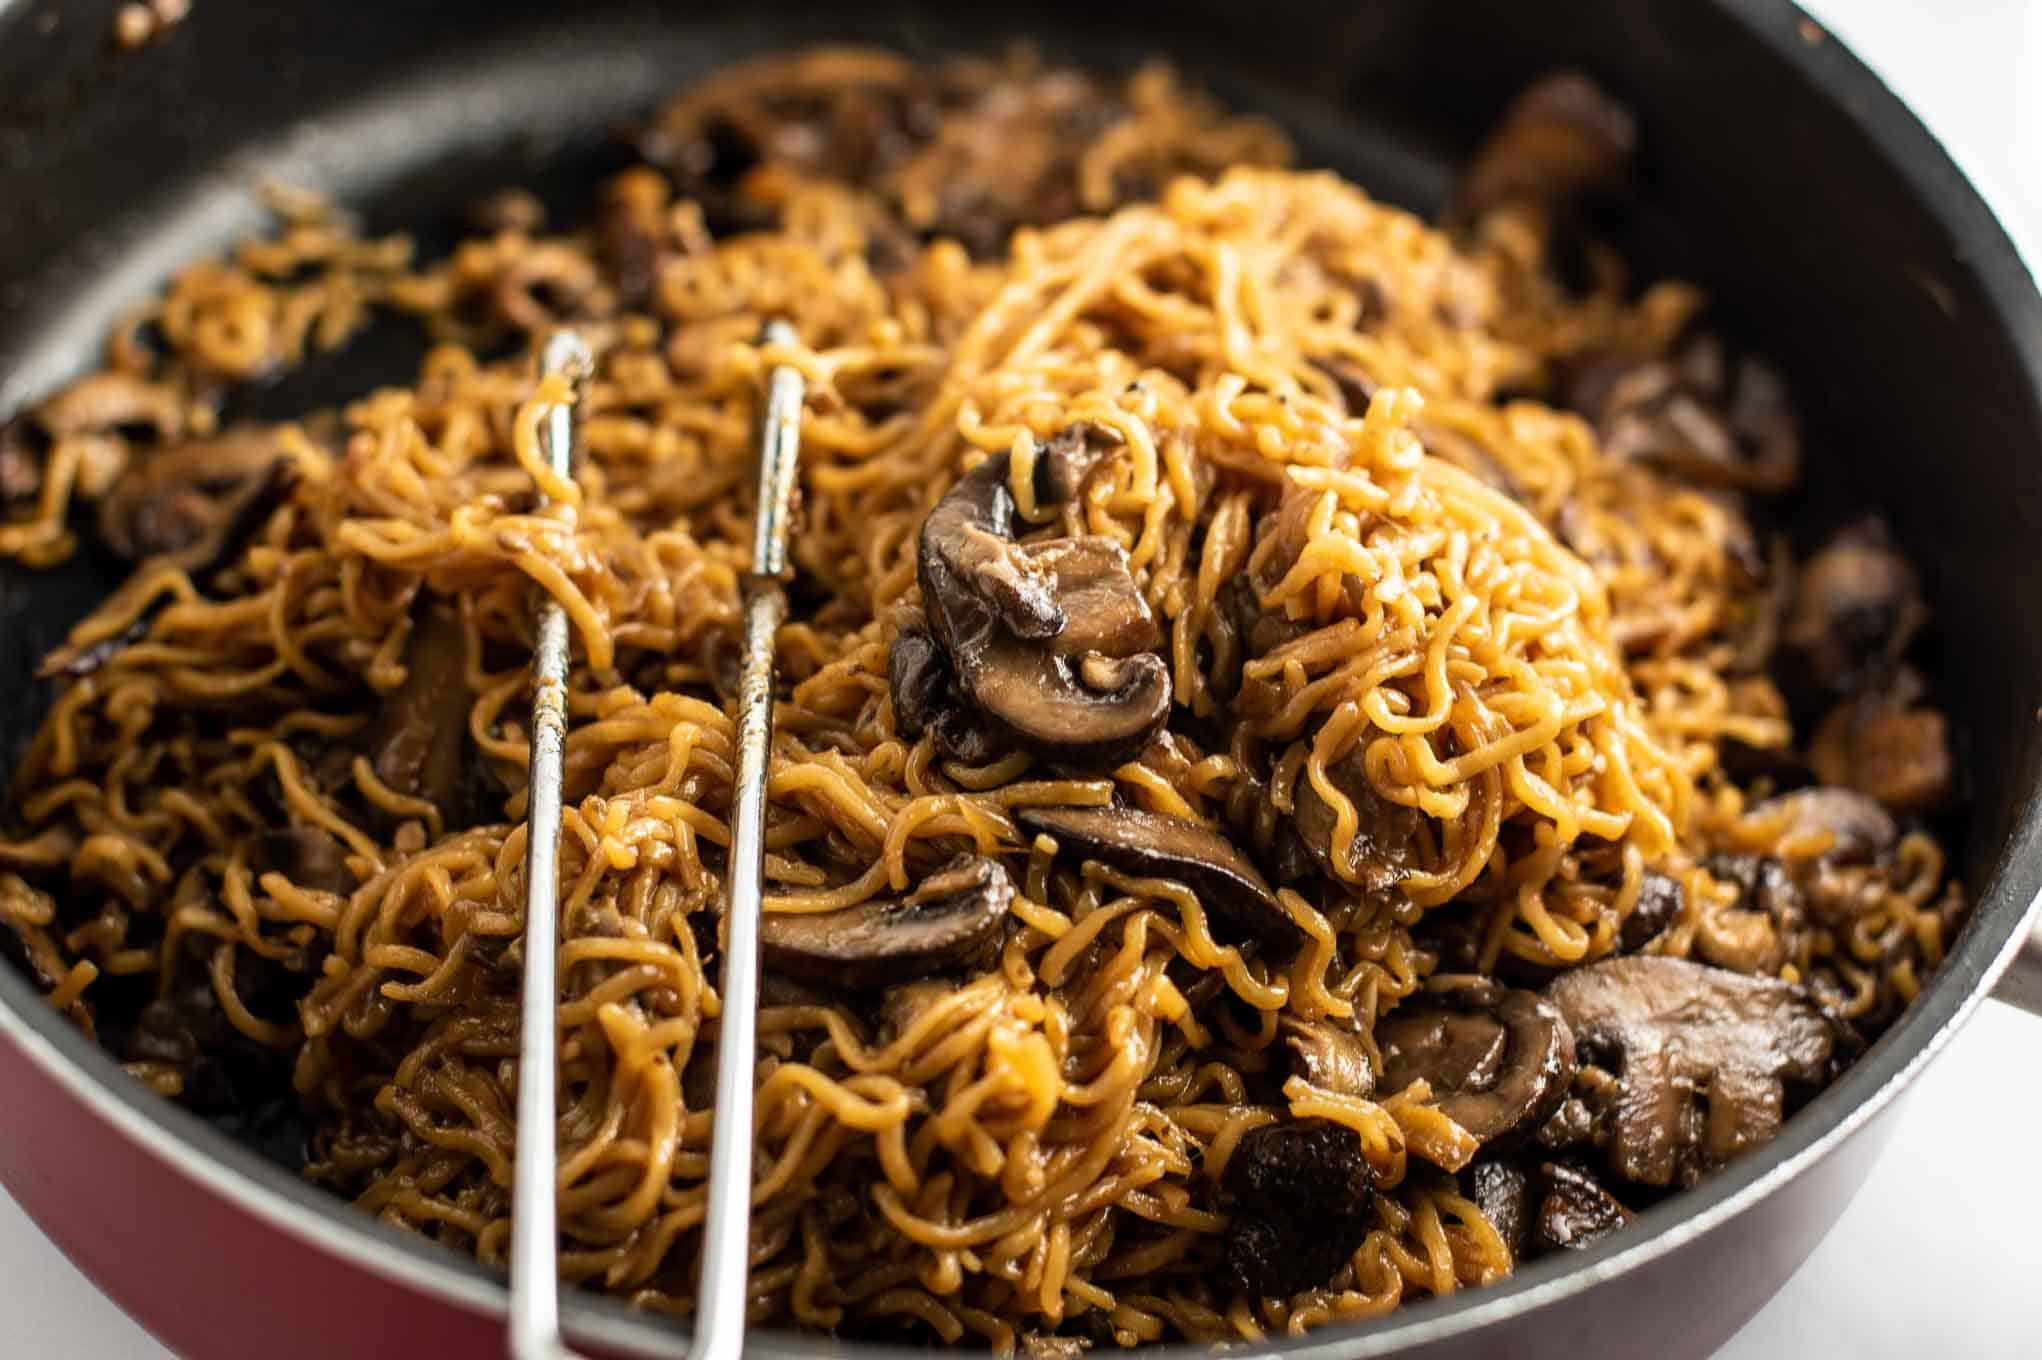 ramen noodles with mushrooms in a red jumbo cooker pan